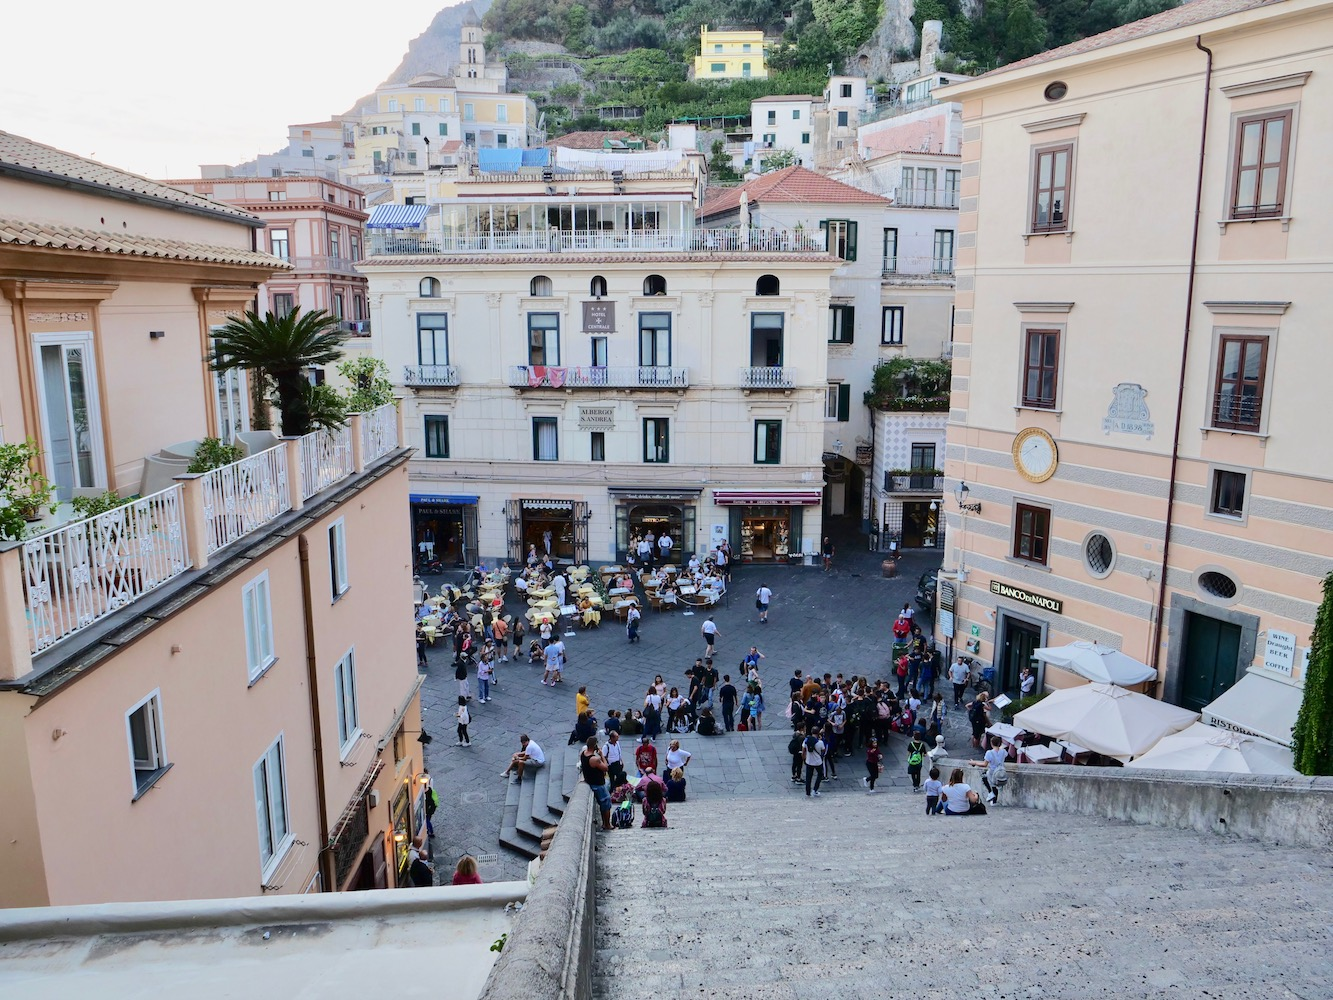 The town square in Amalfi.